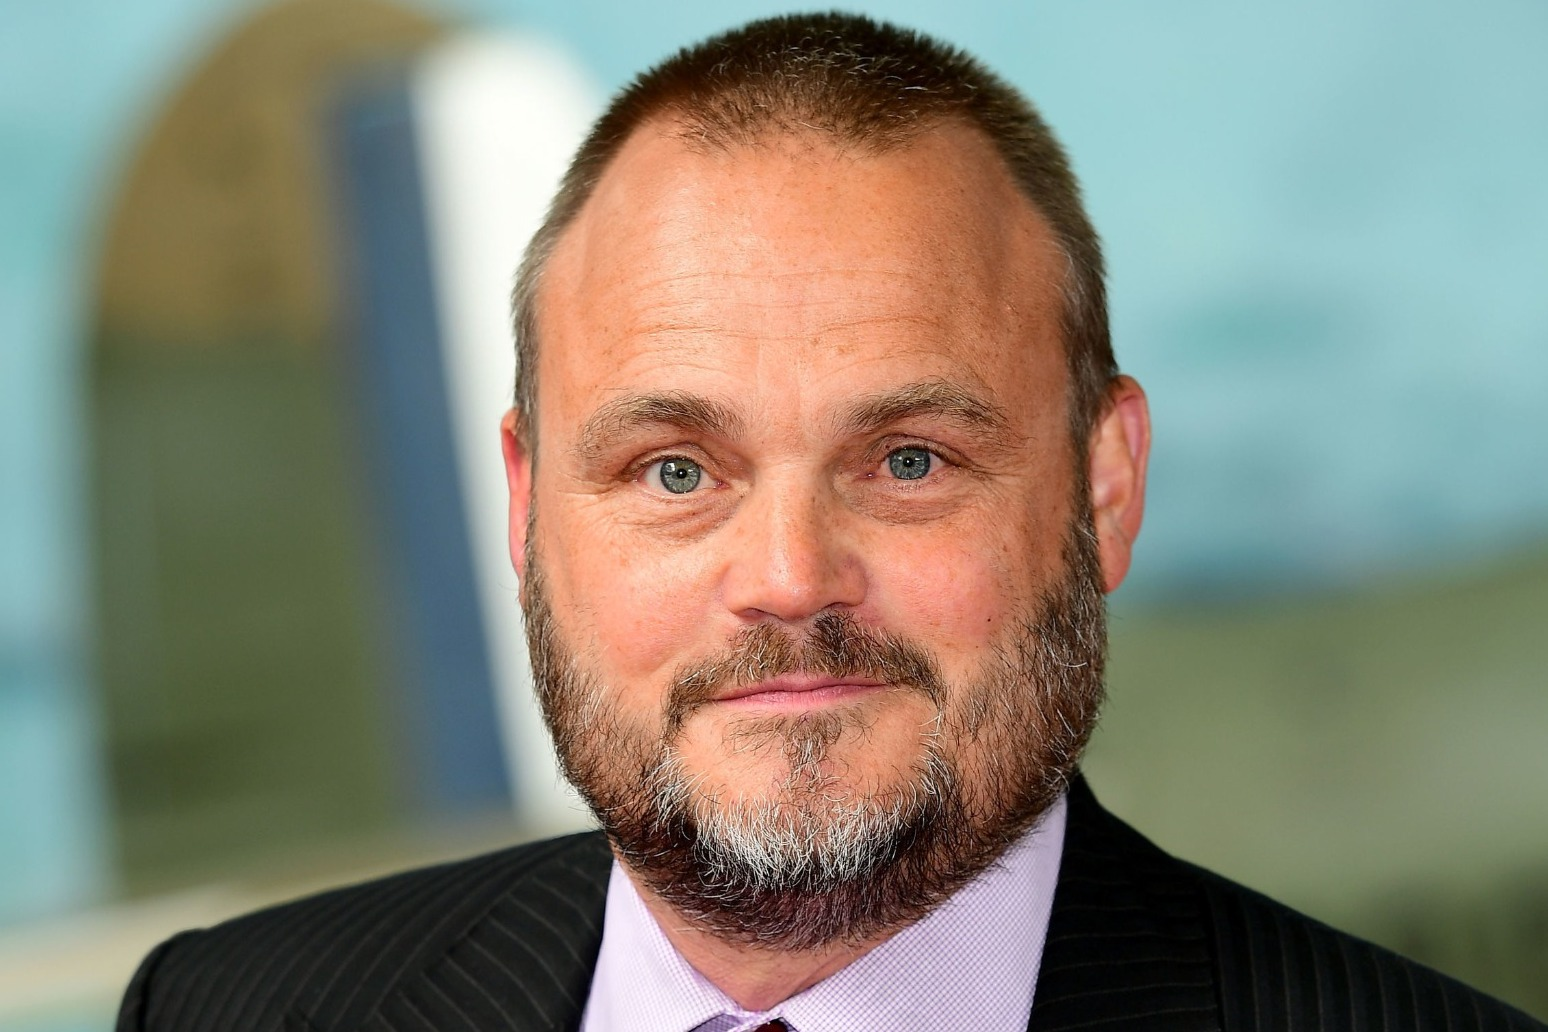 AL MURRAY ON WHY GIVING UP THE PUB LANDLORD WOULD GET HIM \'IN A TANGLE\' ON STAGE